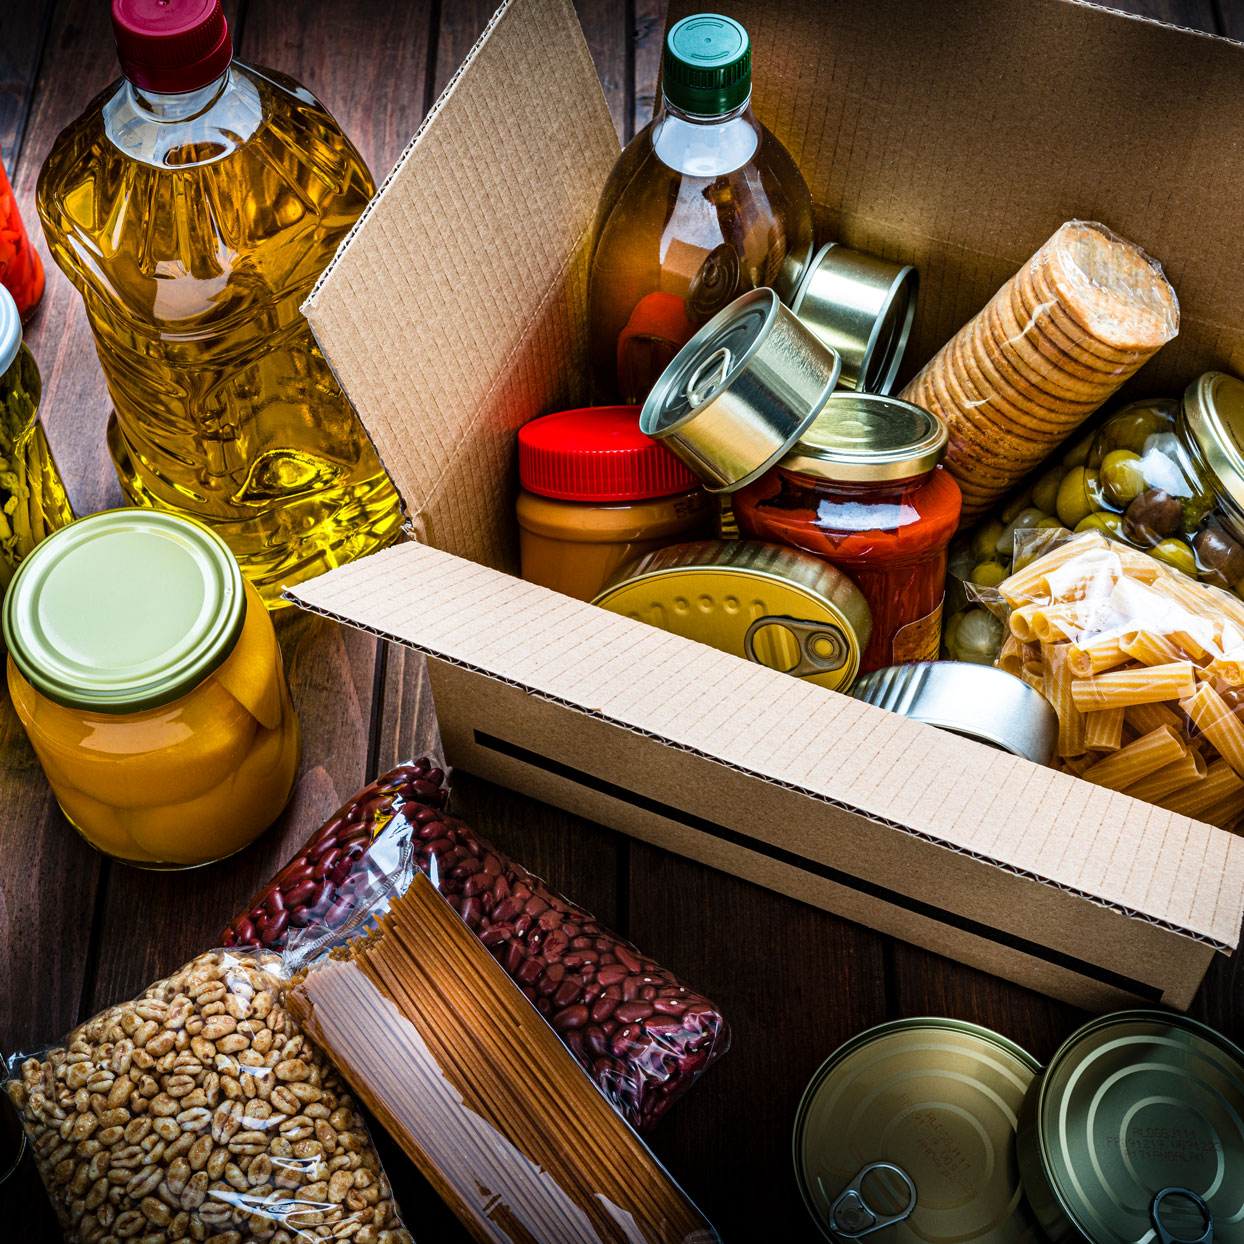 pantry ingredients in a box